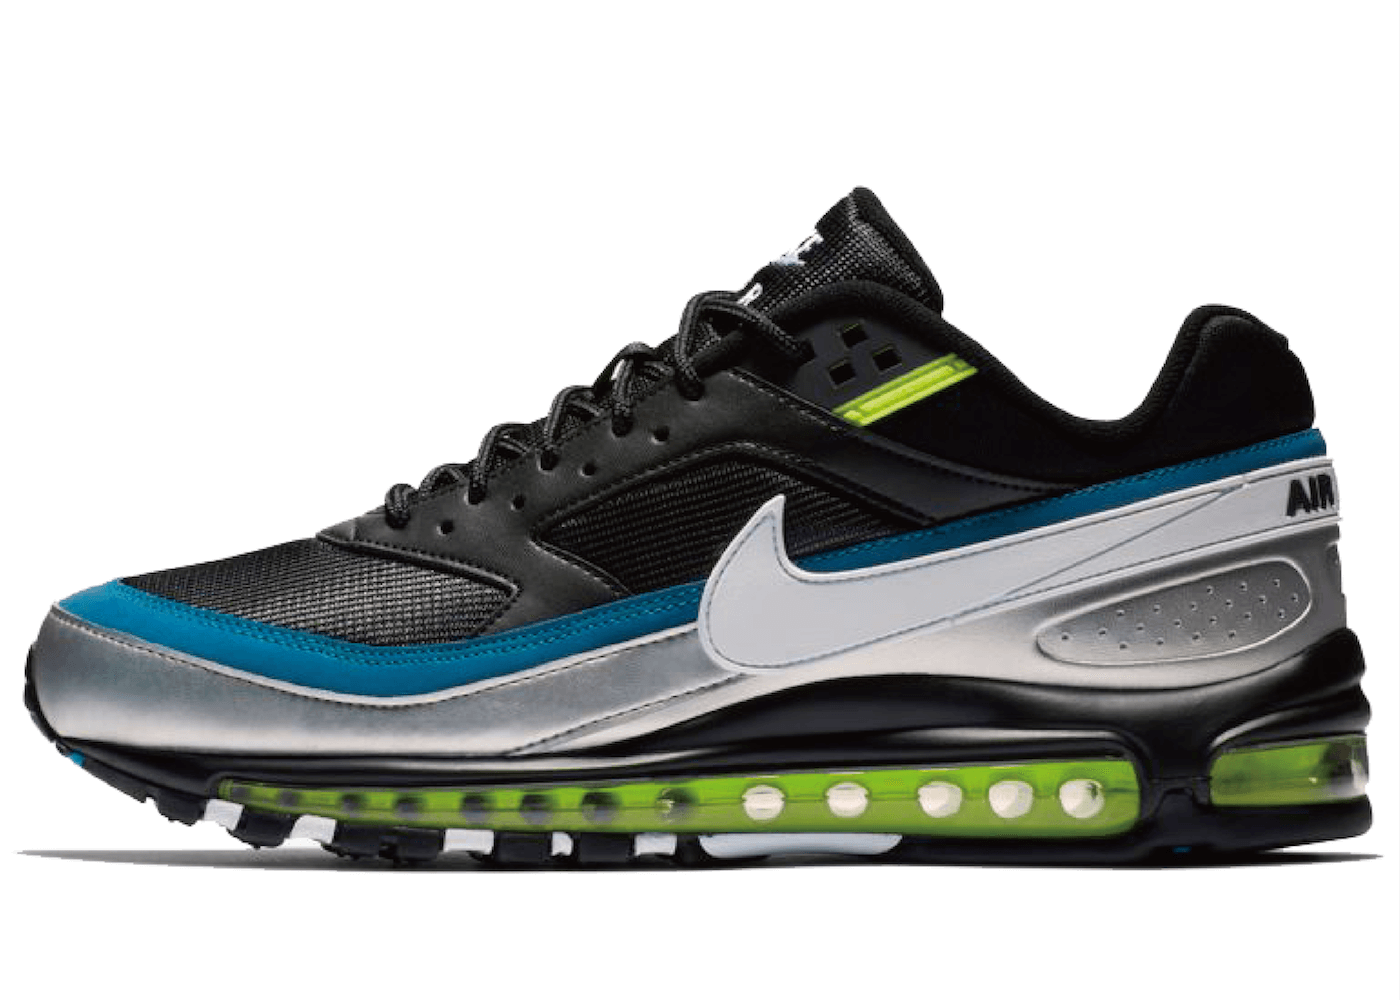 Nike Air Max 97 BW Black Metallic Silver Atlantic Blueの写真